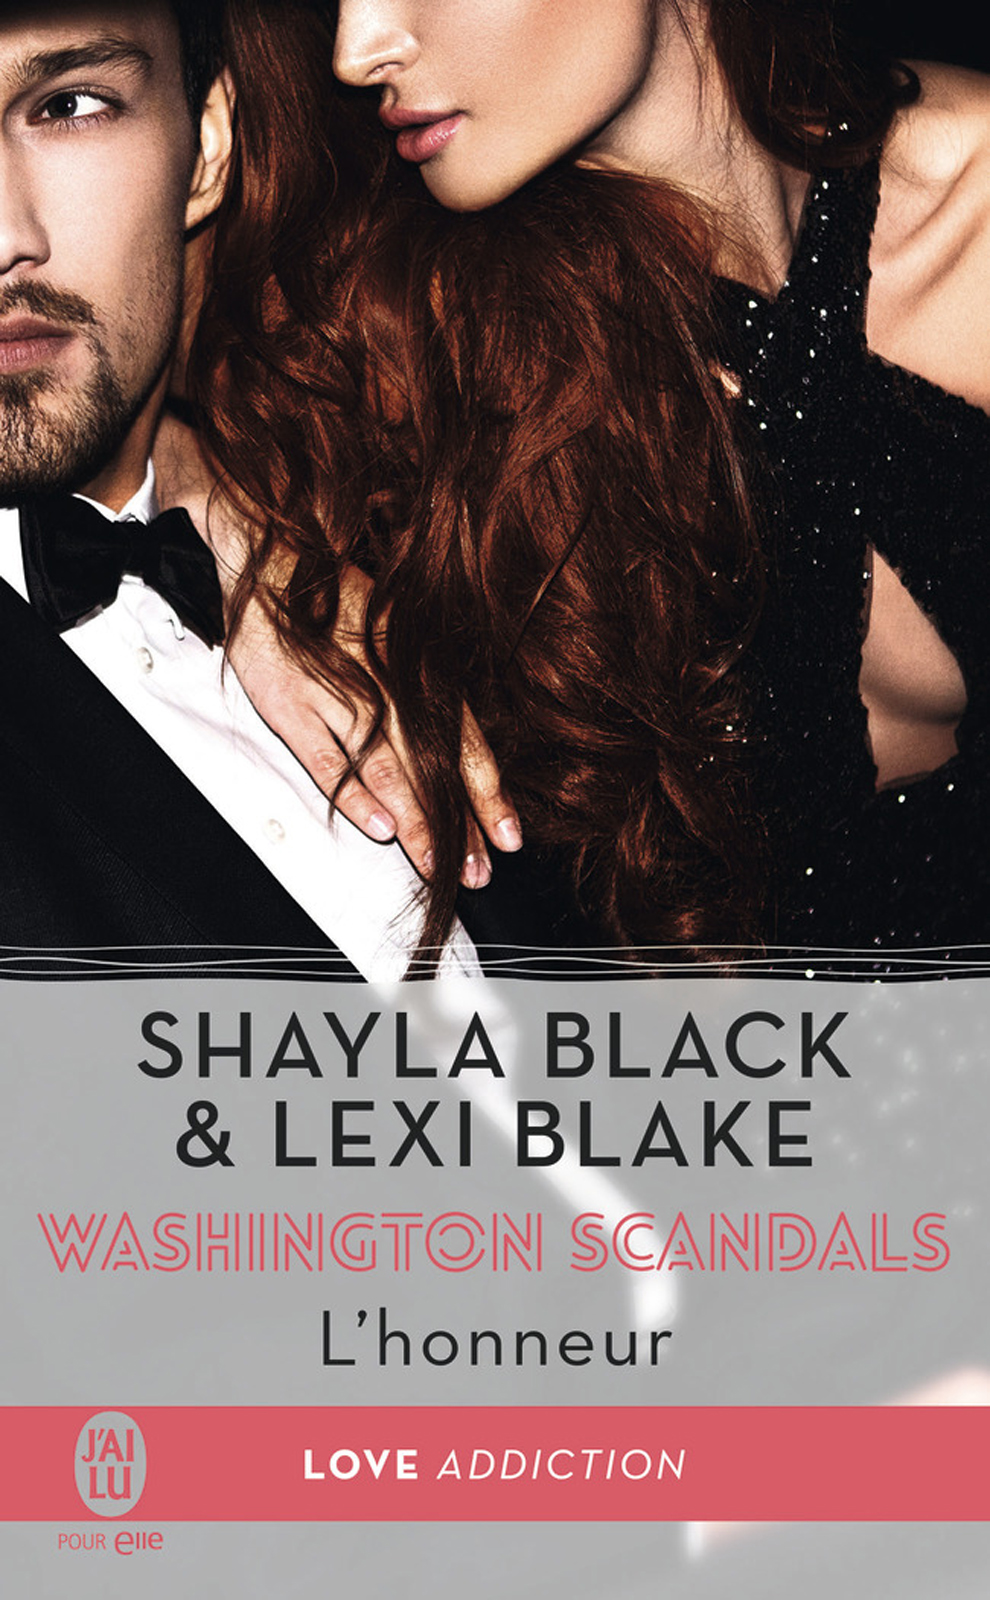 Washington scandals (Tome 1) - L'honneur